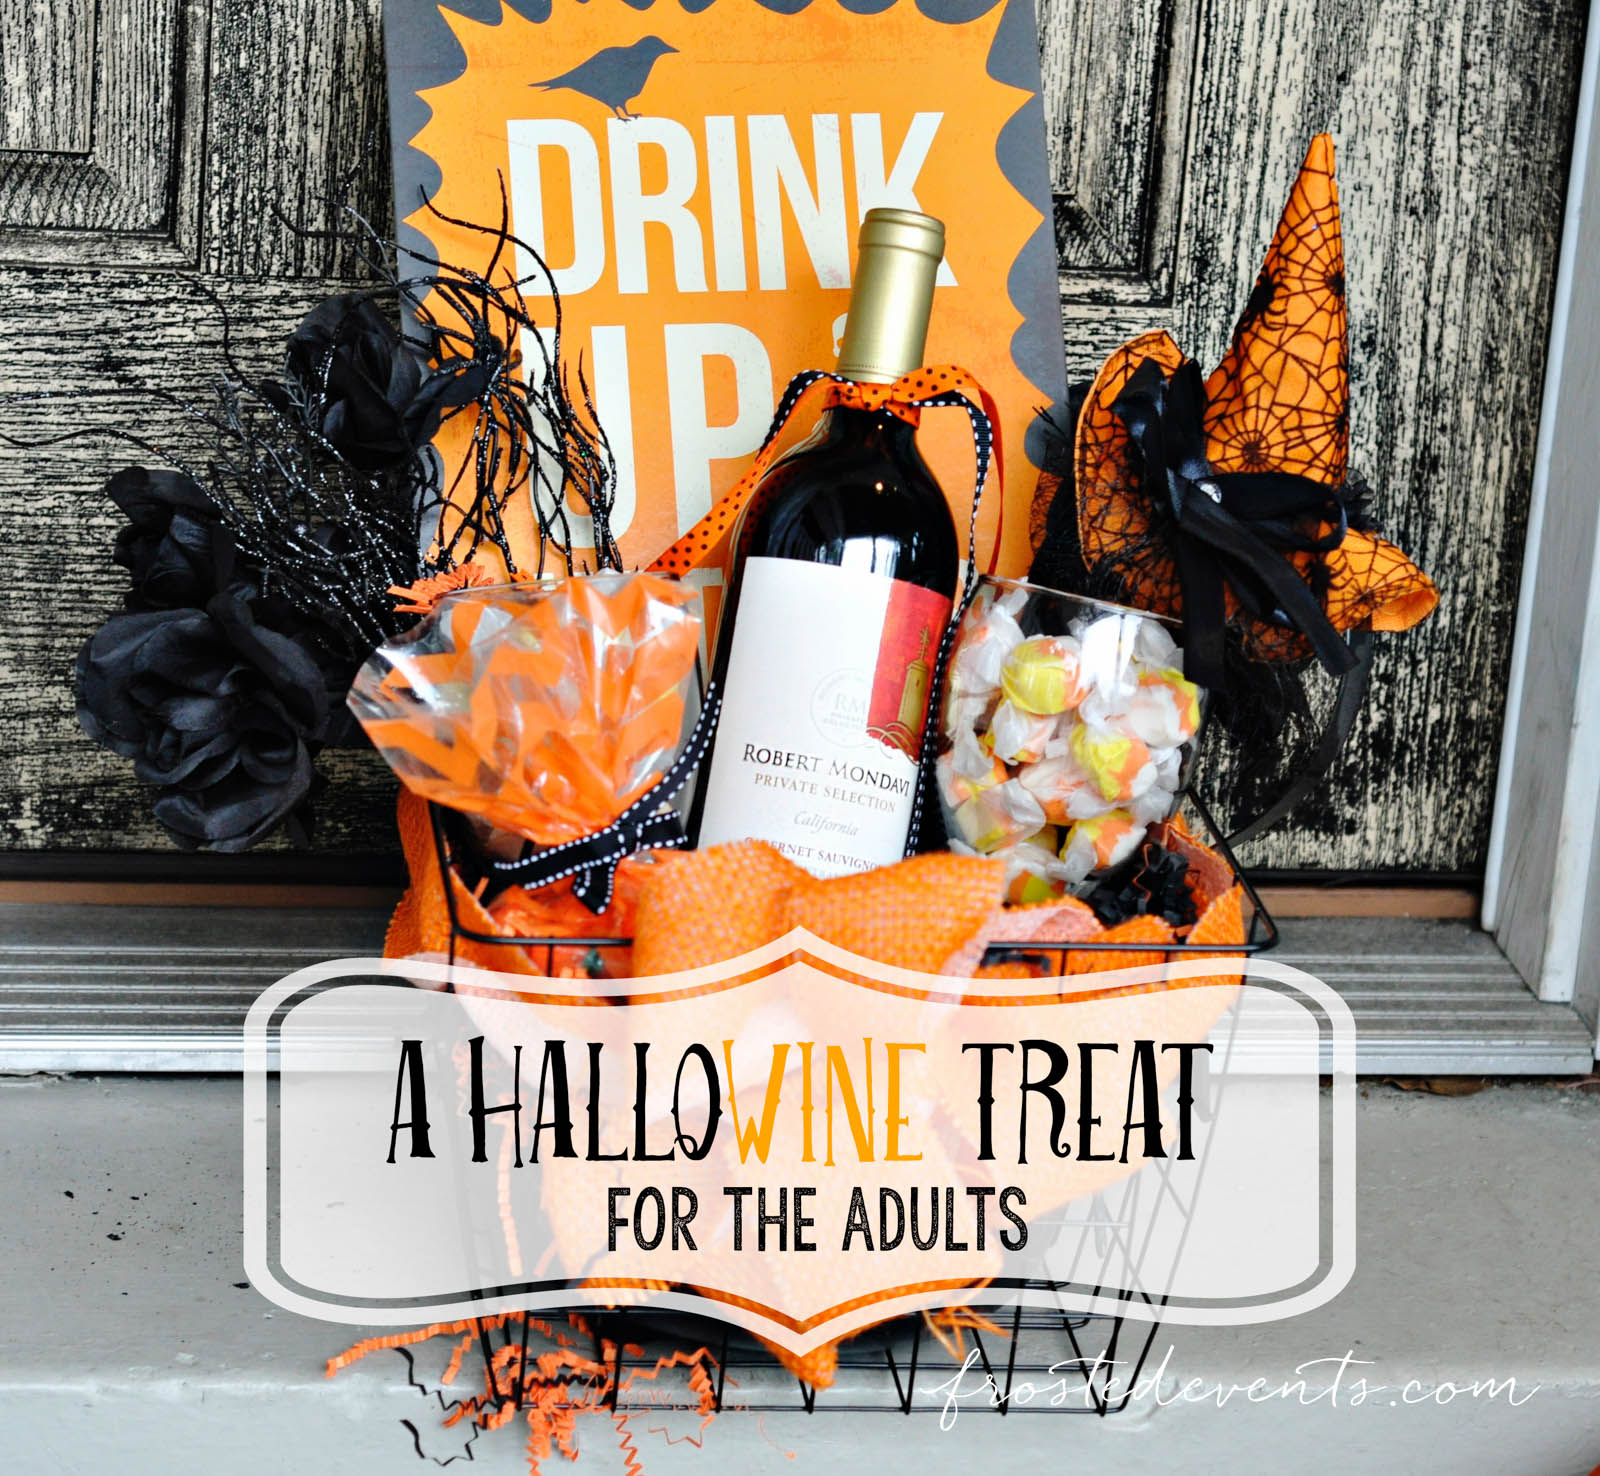 Halloween Gift Basket Ideas For Adults.Diy Hallowine Treat For Moms You Ve Been Booed